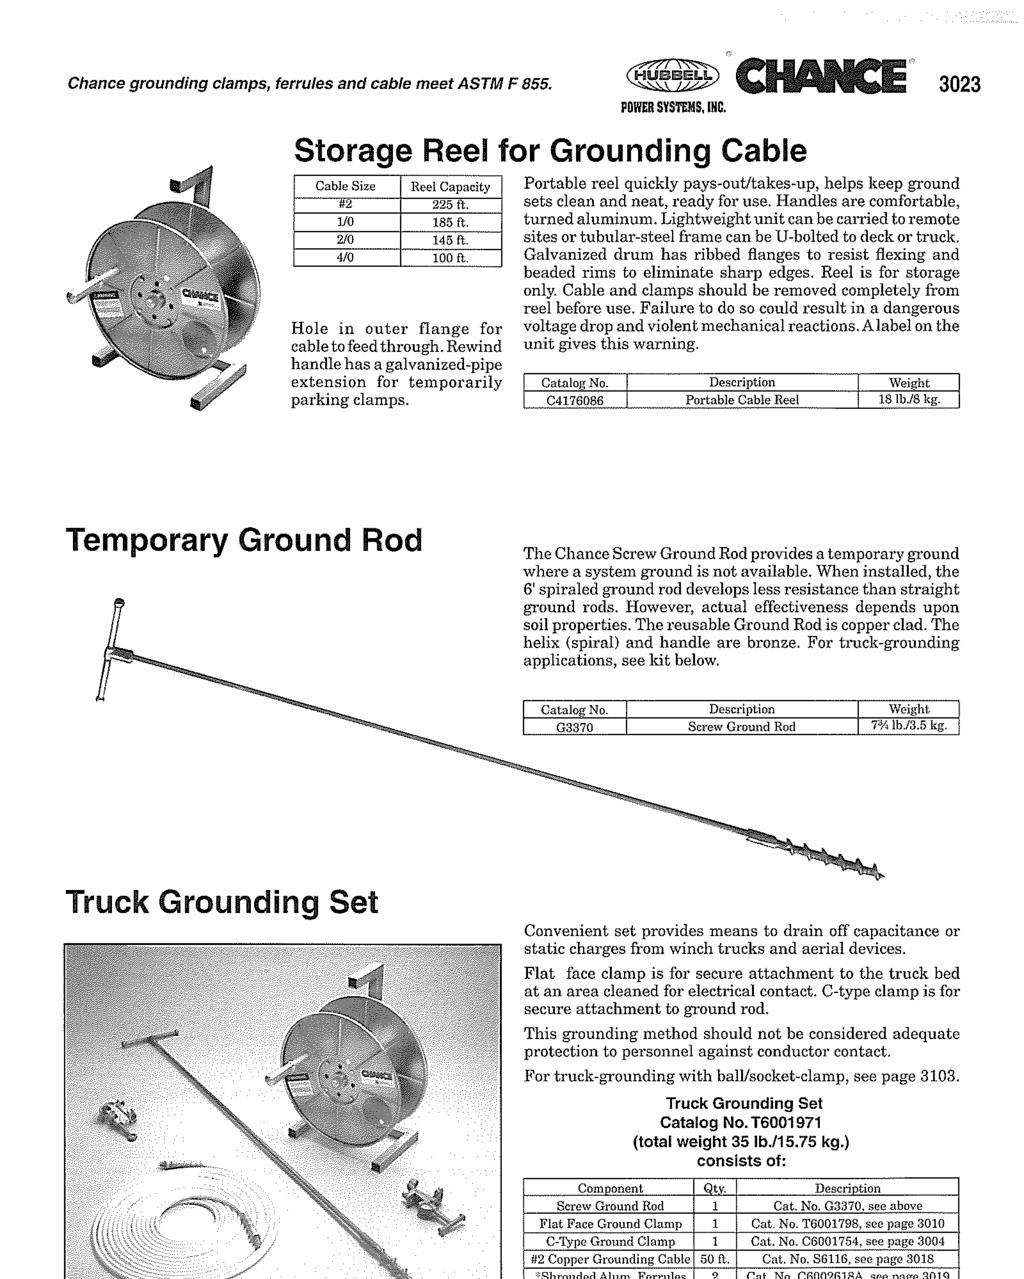 Chance grounding clamps, ferrules and cable meet ASTM F 855, 3023 POWER SYSTEMS, IHC.